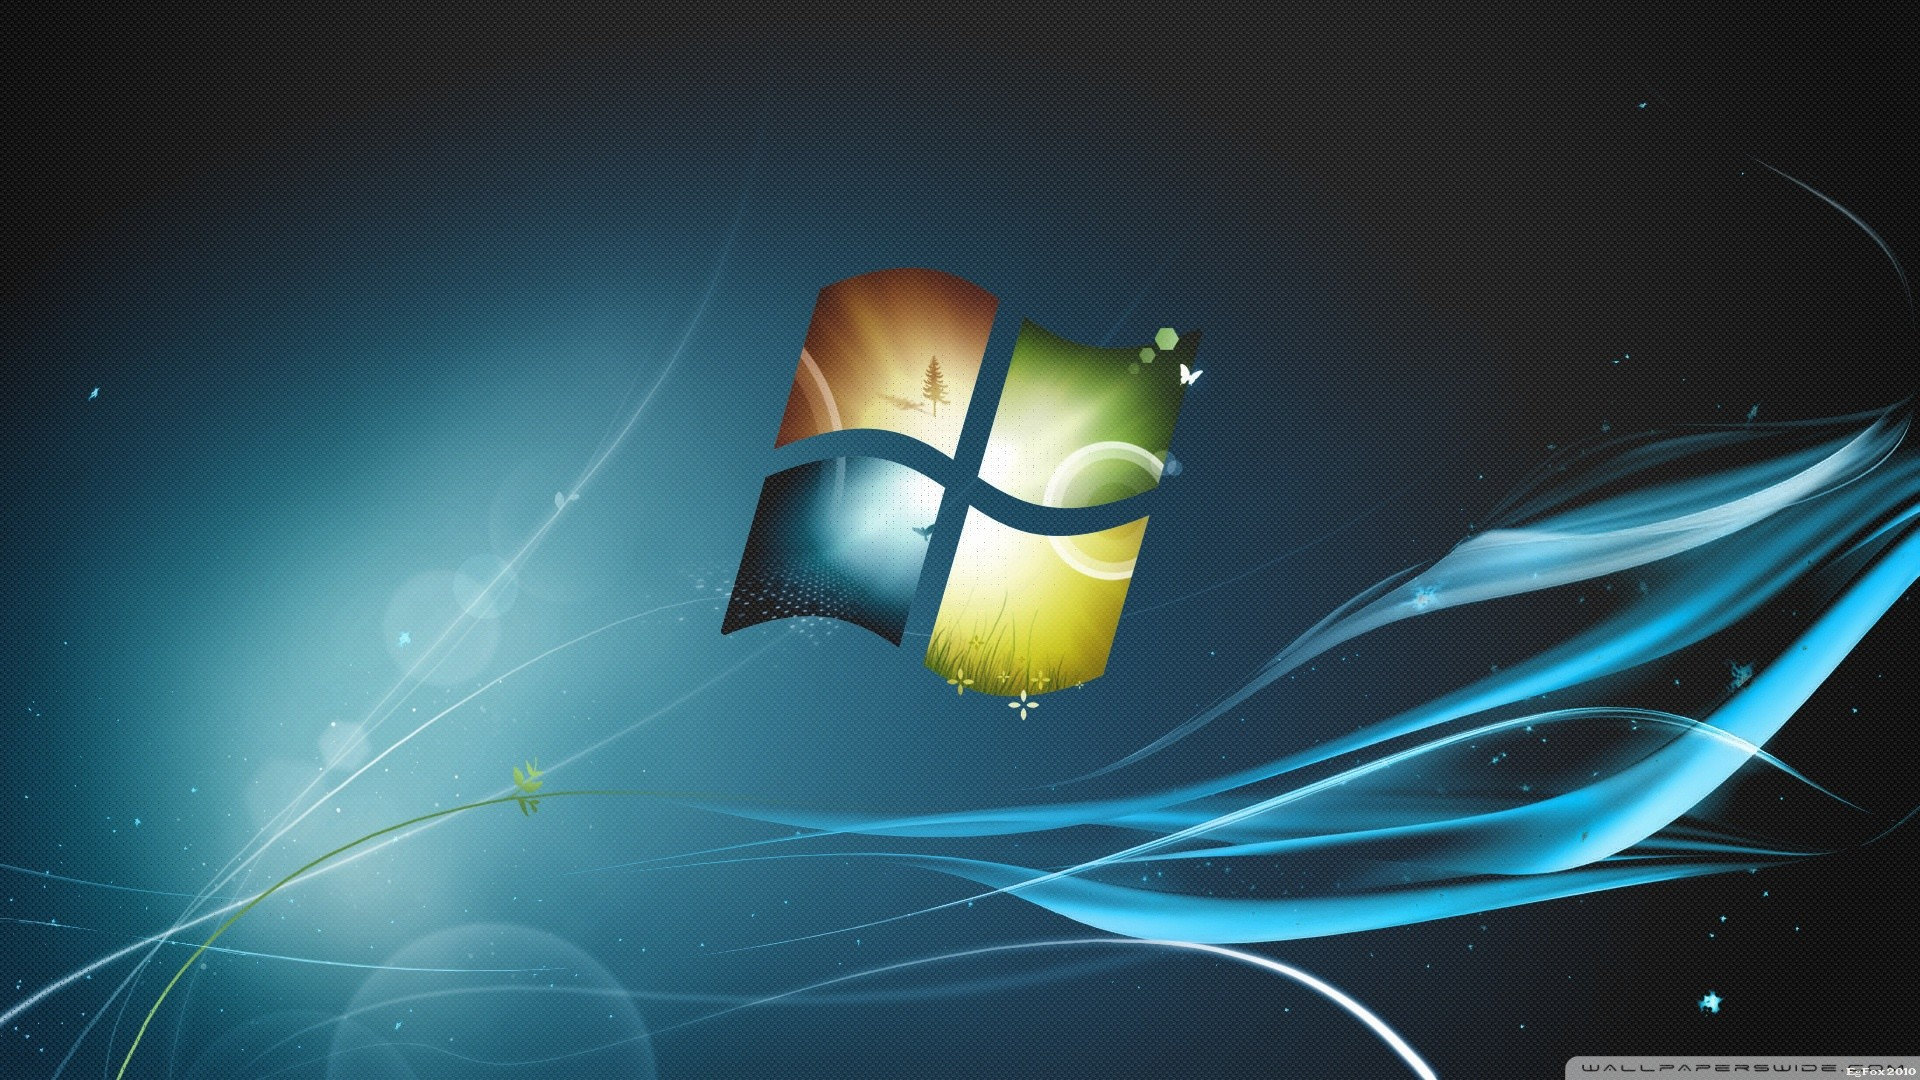 HD Wallpapers For Windows 7 Wallpapers) – HD Wallpapers